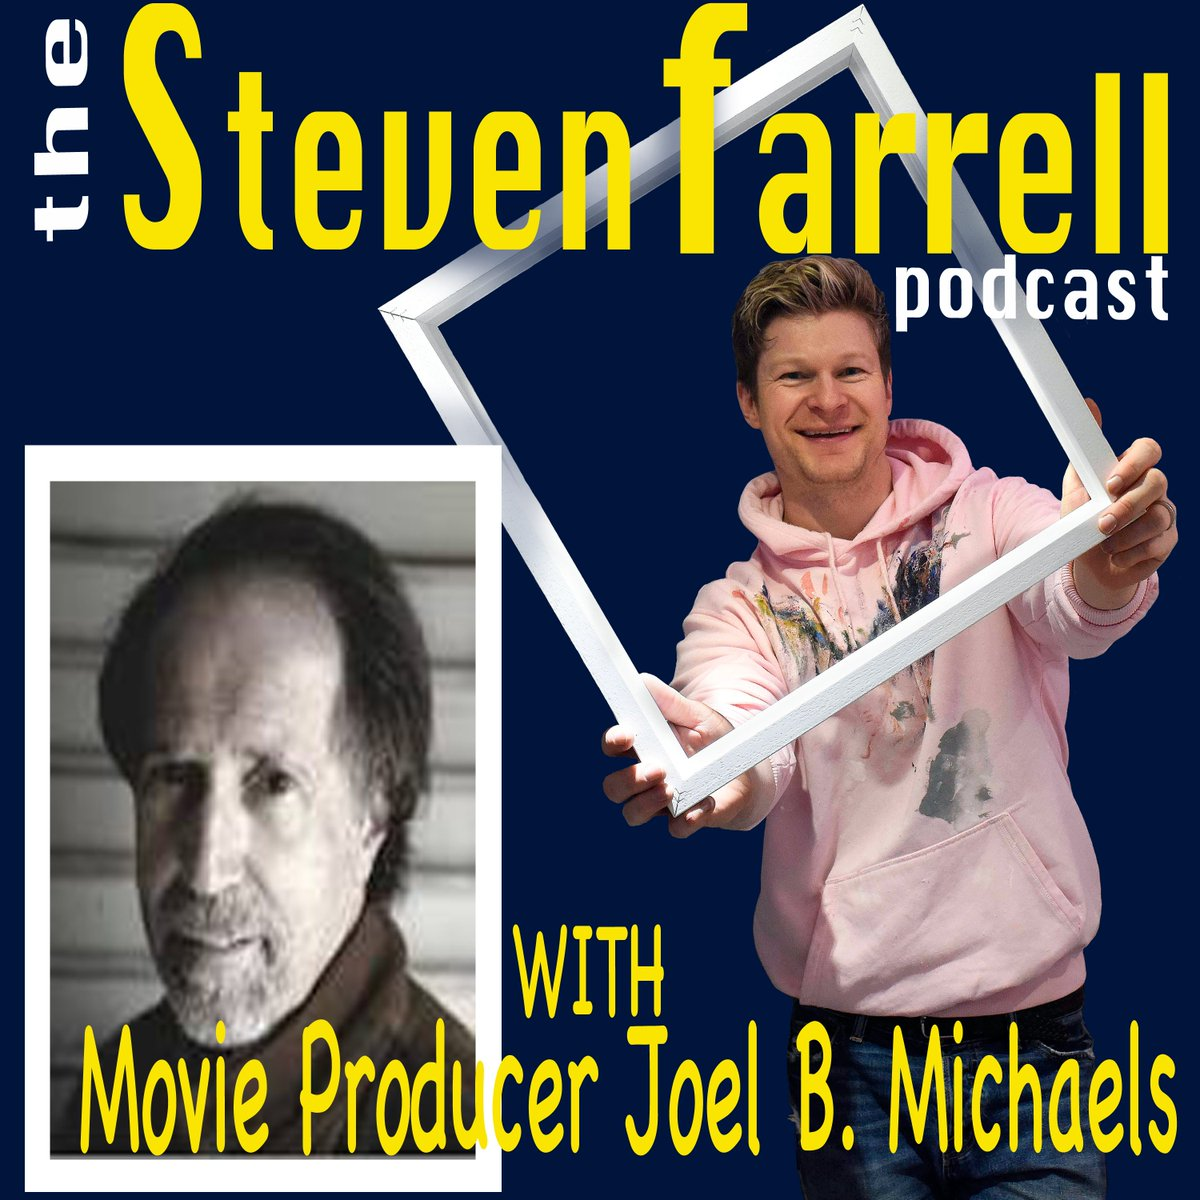 Hollywood film producer, with 50 years experience working on films like Stargate, Terminator Salvation, Basic Instincts 2 and after the Wedding (201) Lots. of learning int his episode. https://itunes.apple.com/ie/podcast/8-50-years-as-a-hollywood-movie-producer/id1450766693?i=1000429277665&mt=2…